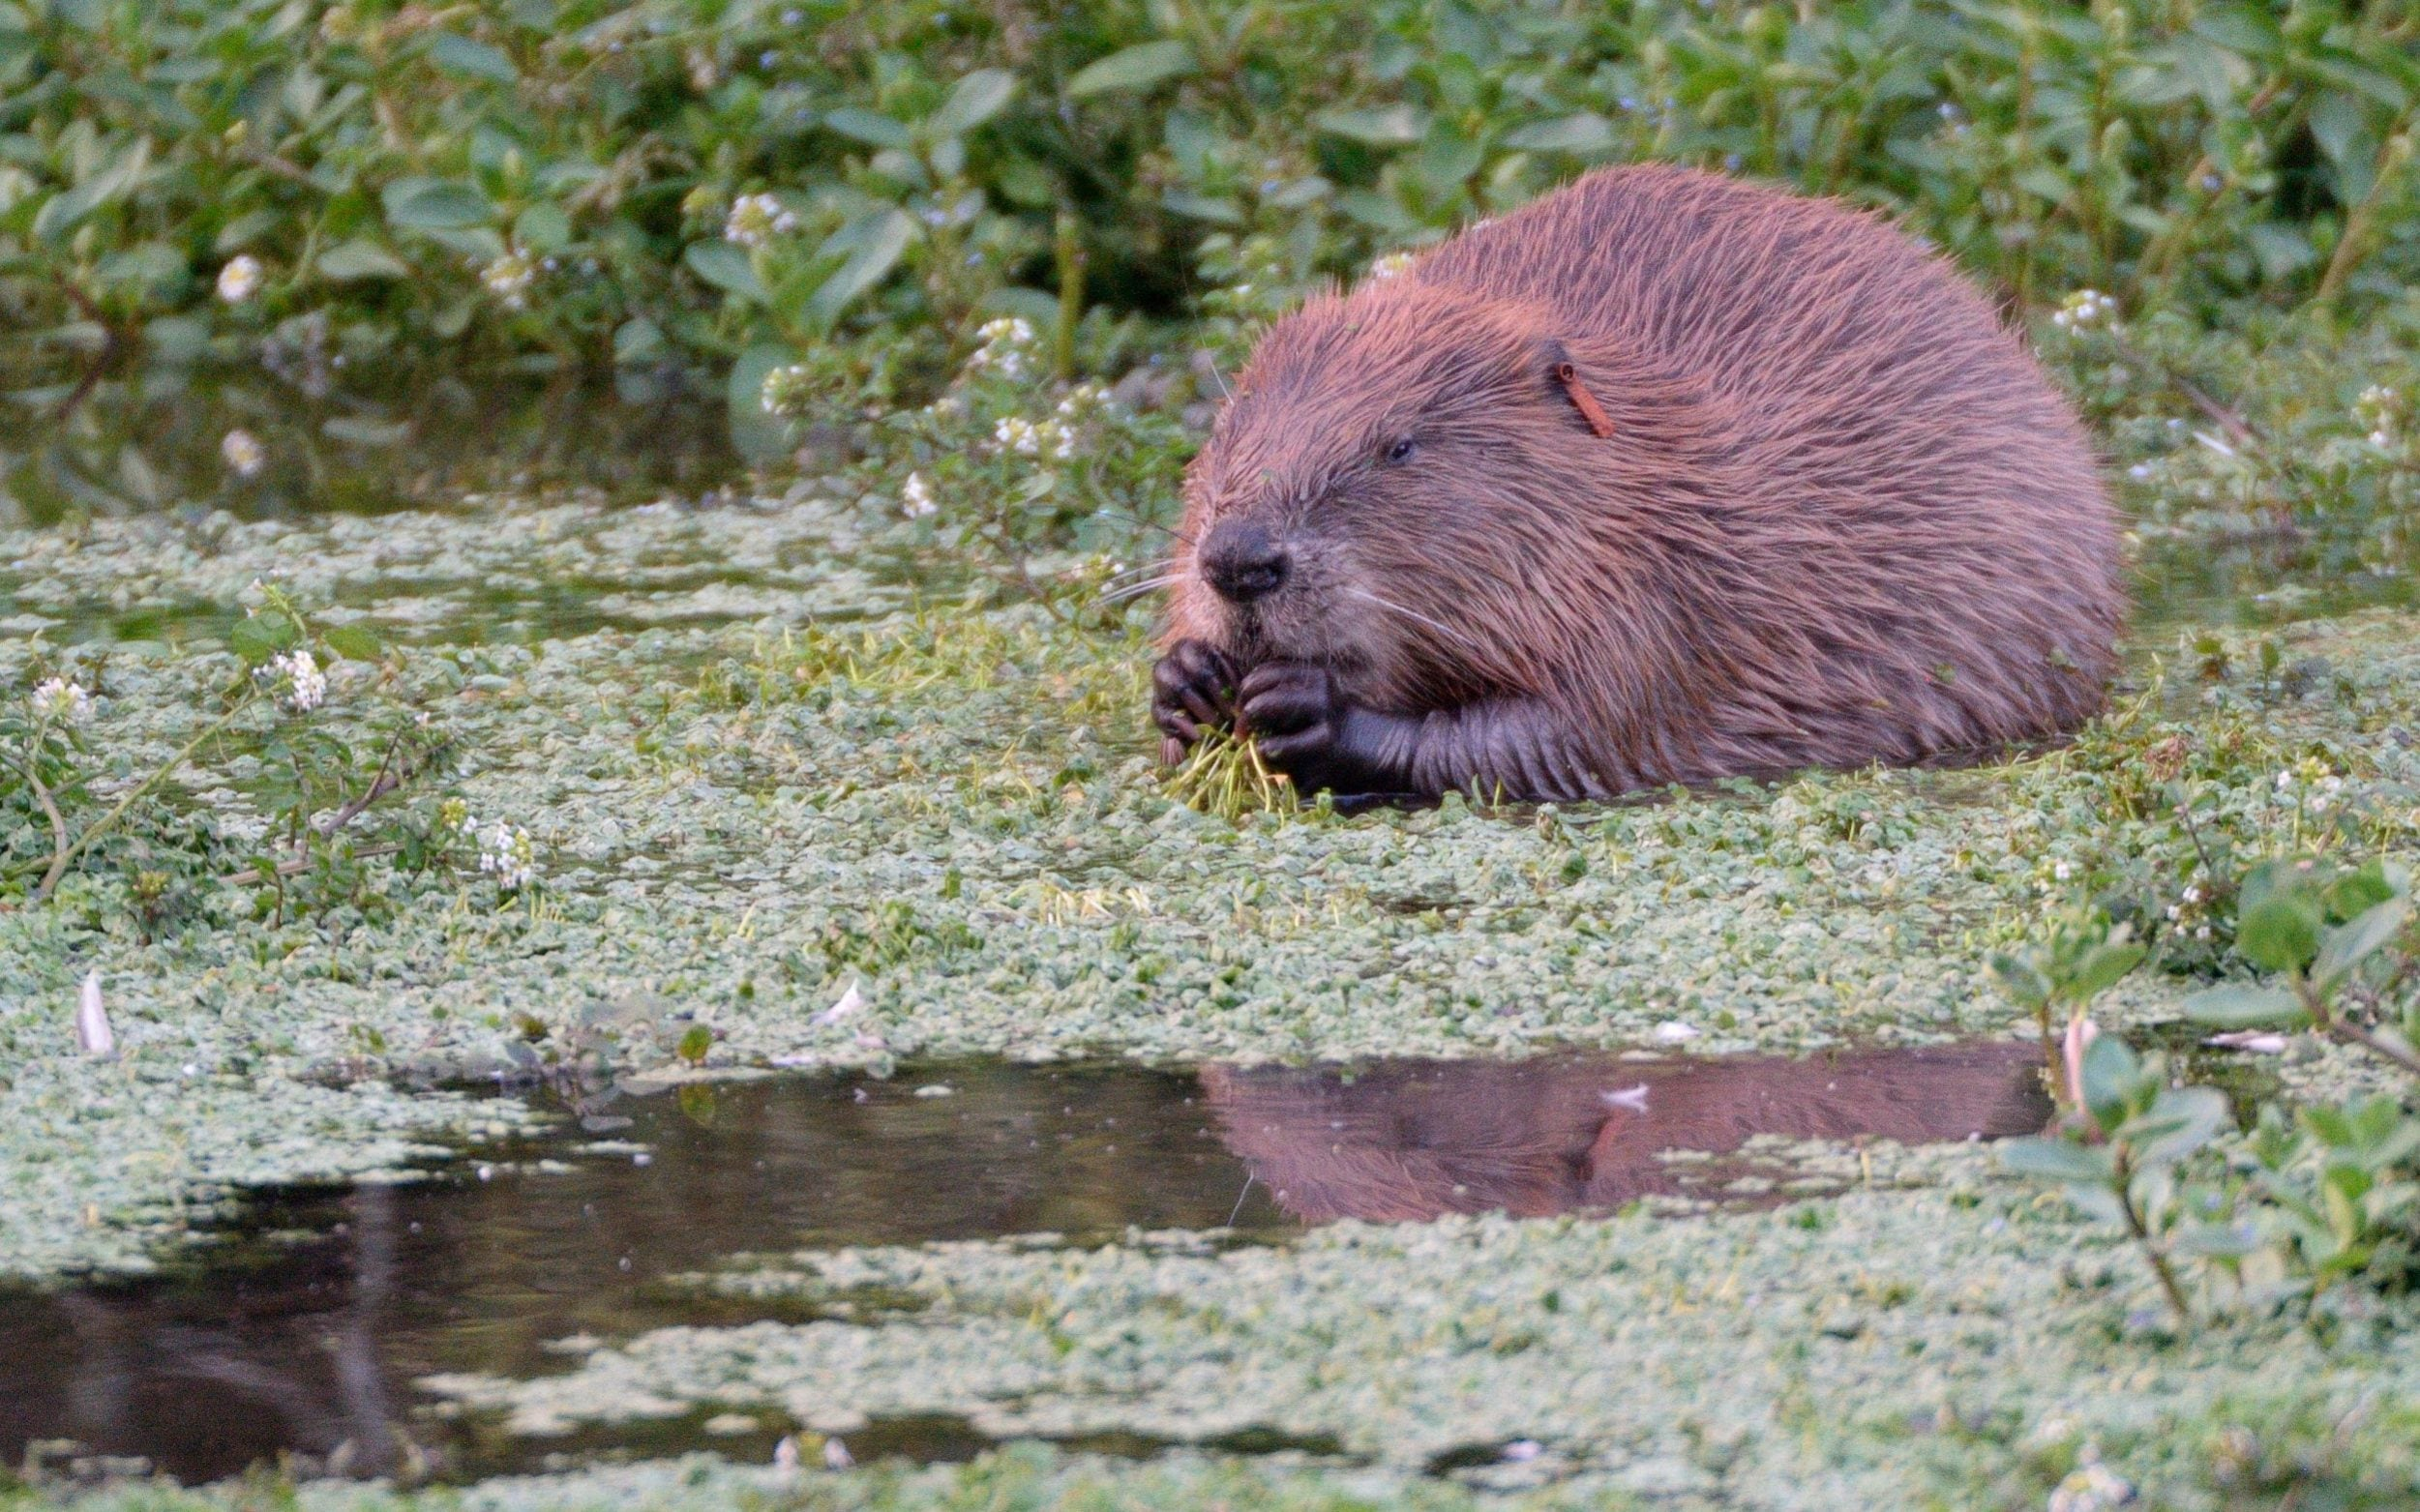 Reintroduction of beavers could protect land against floods and climate change